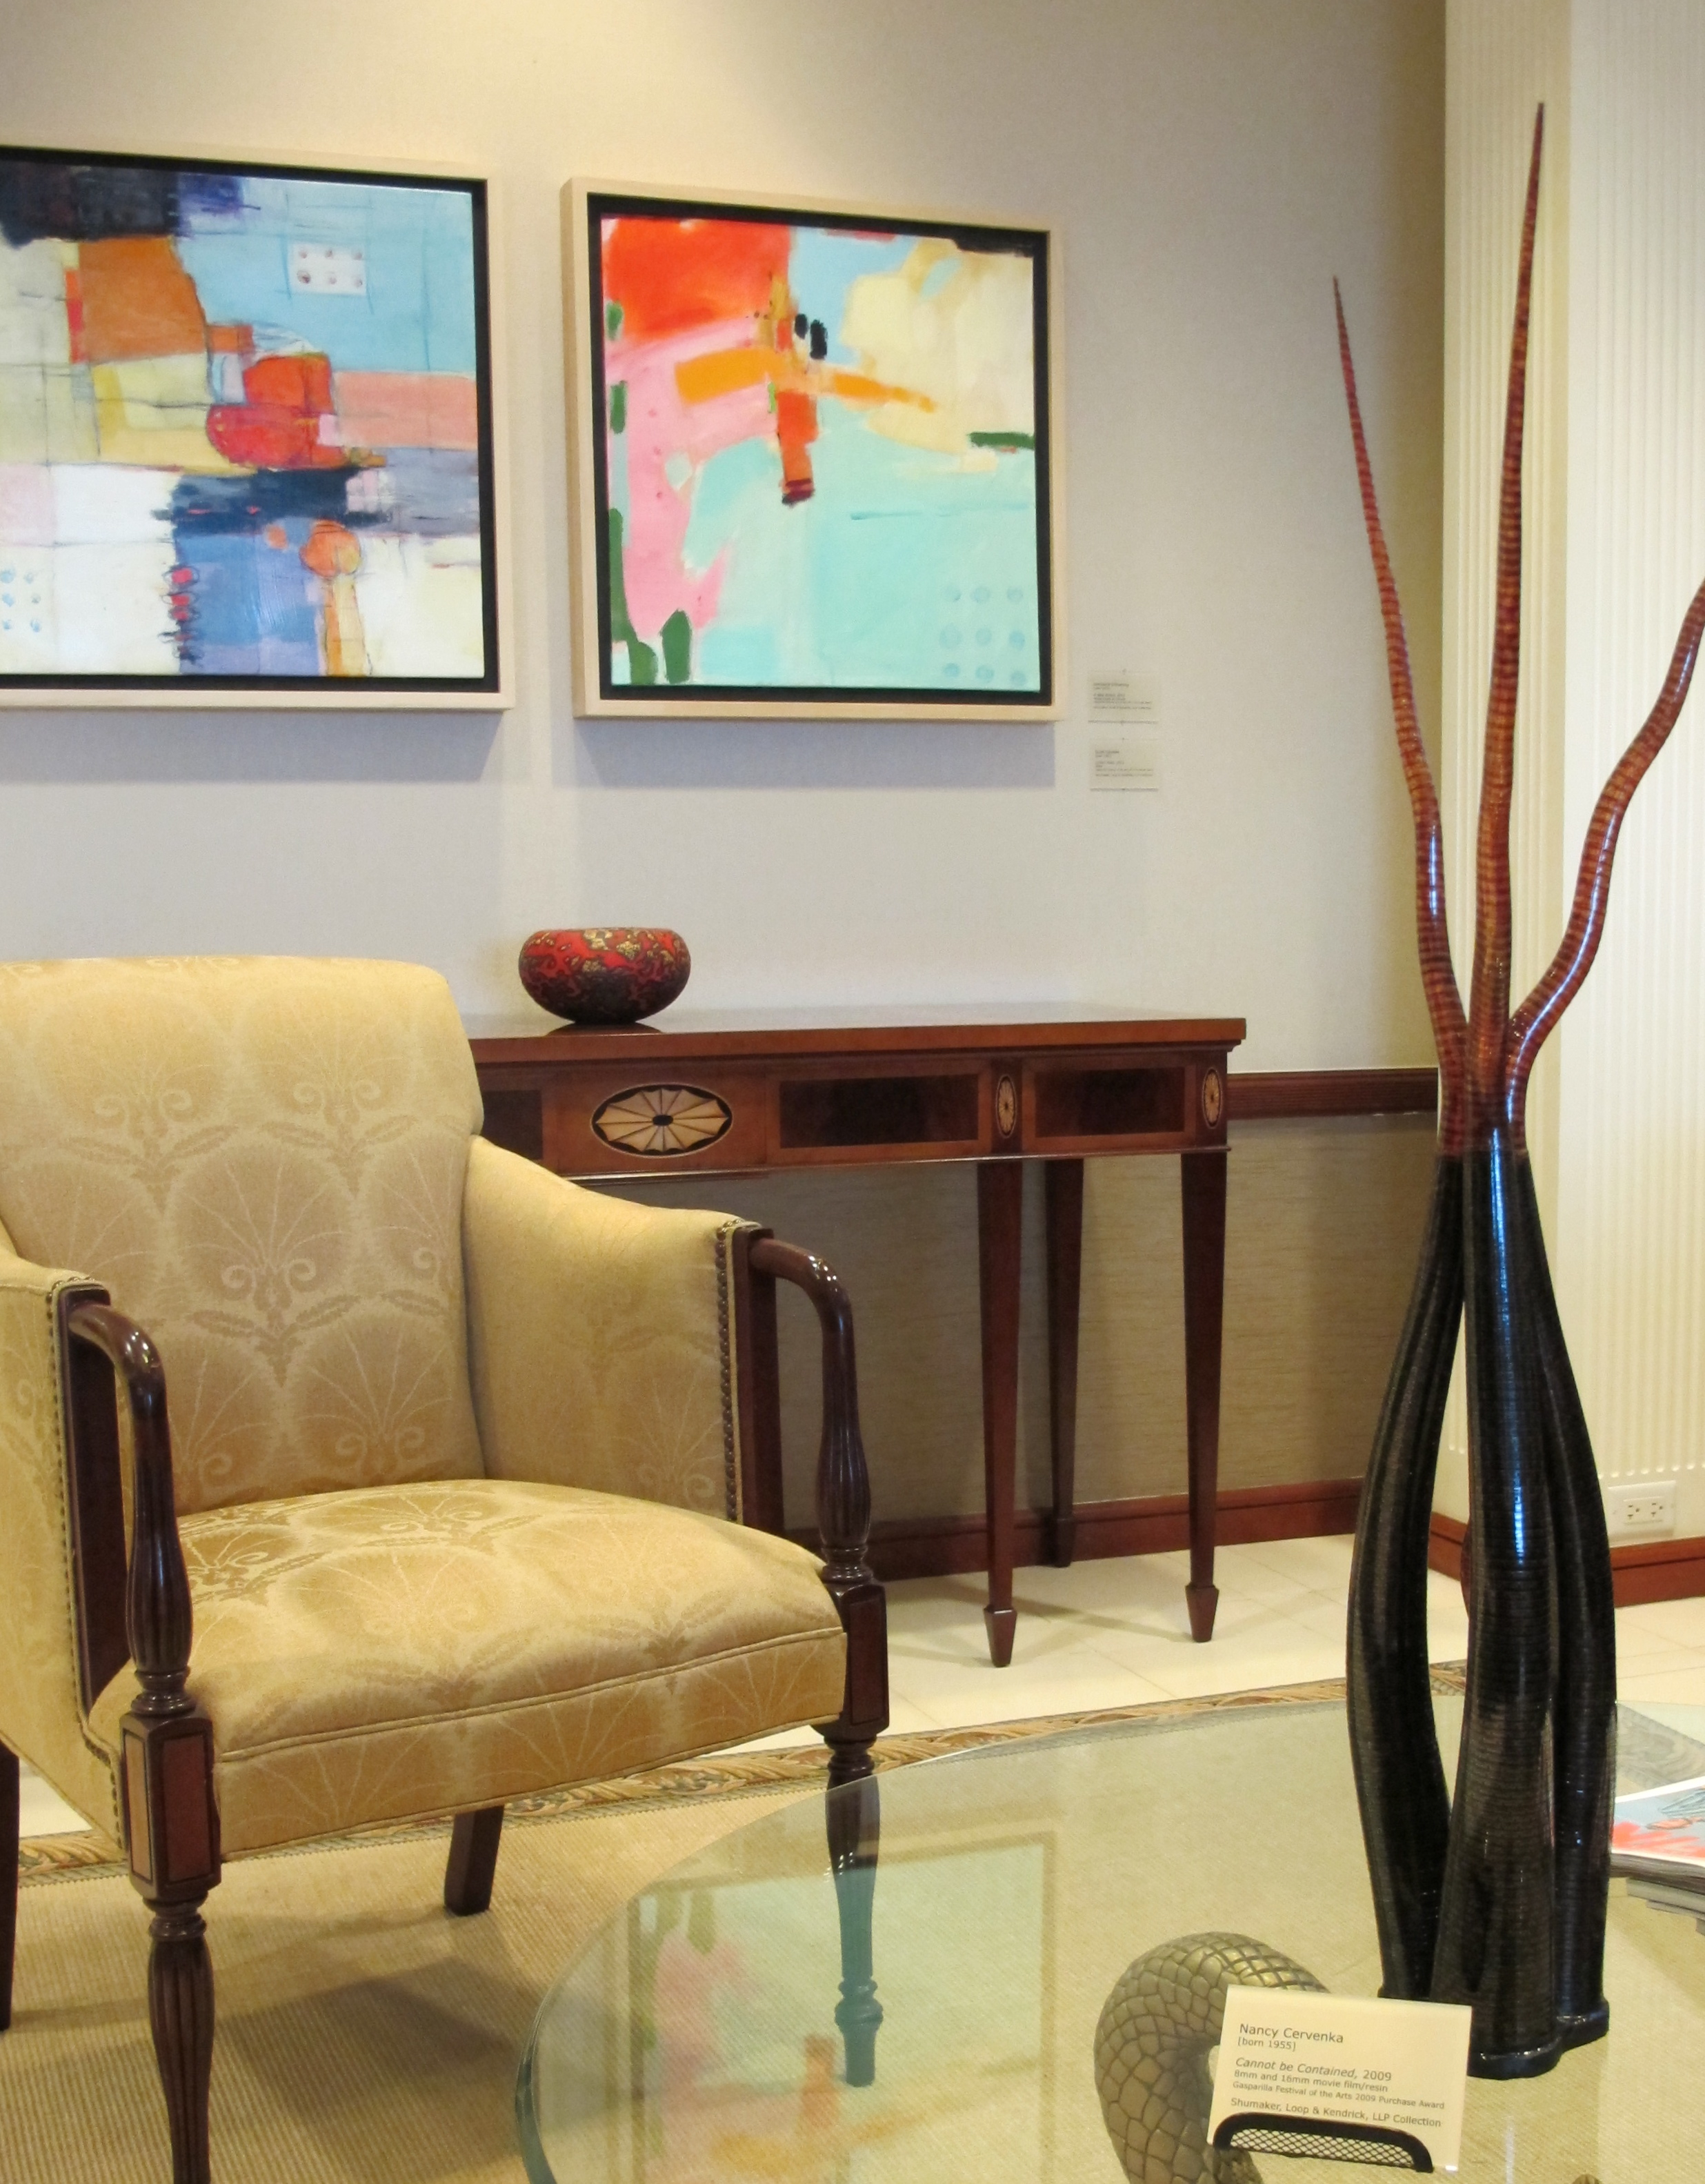 Corporate lobby rearranged with new artwork, mixed media paintings by Tony Eitharong, and a sculpture by Nancy Cervenka, made from strips of film.